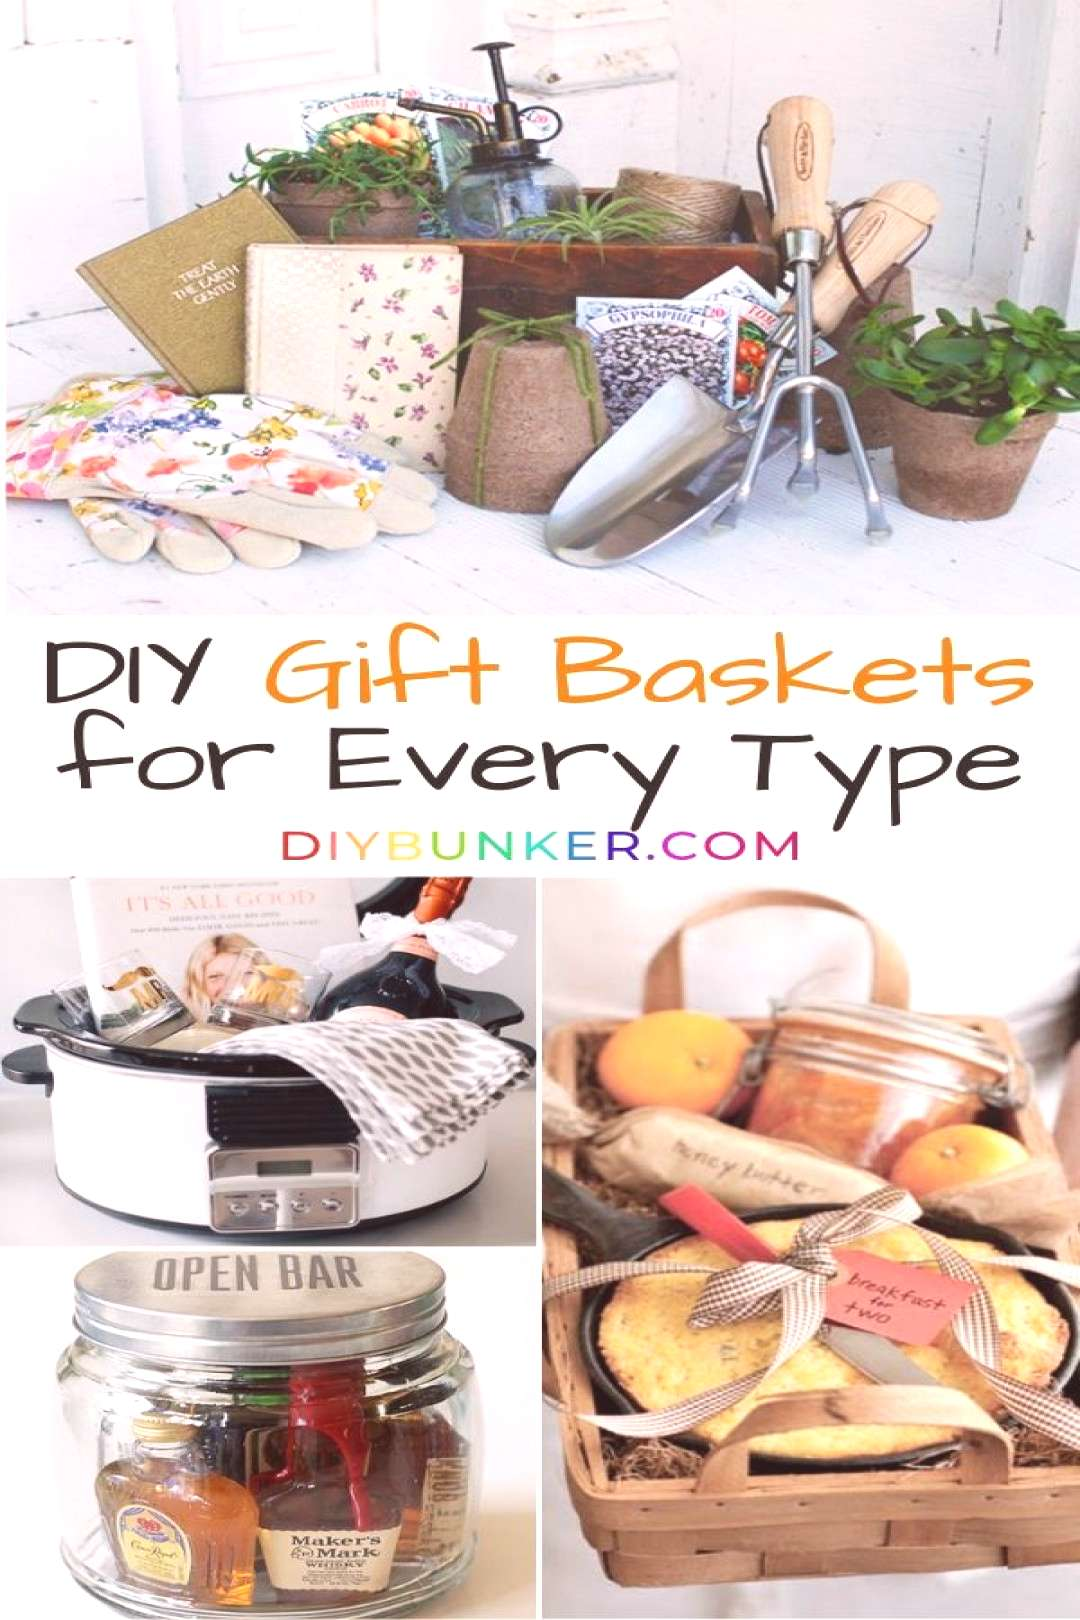 These gift basket DIY ideas are PERFECT if youre looking to give your friends a homemade gift. Awe